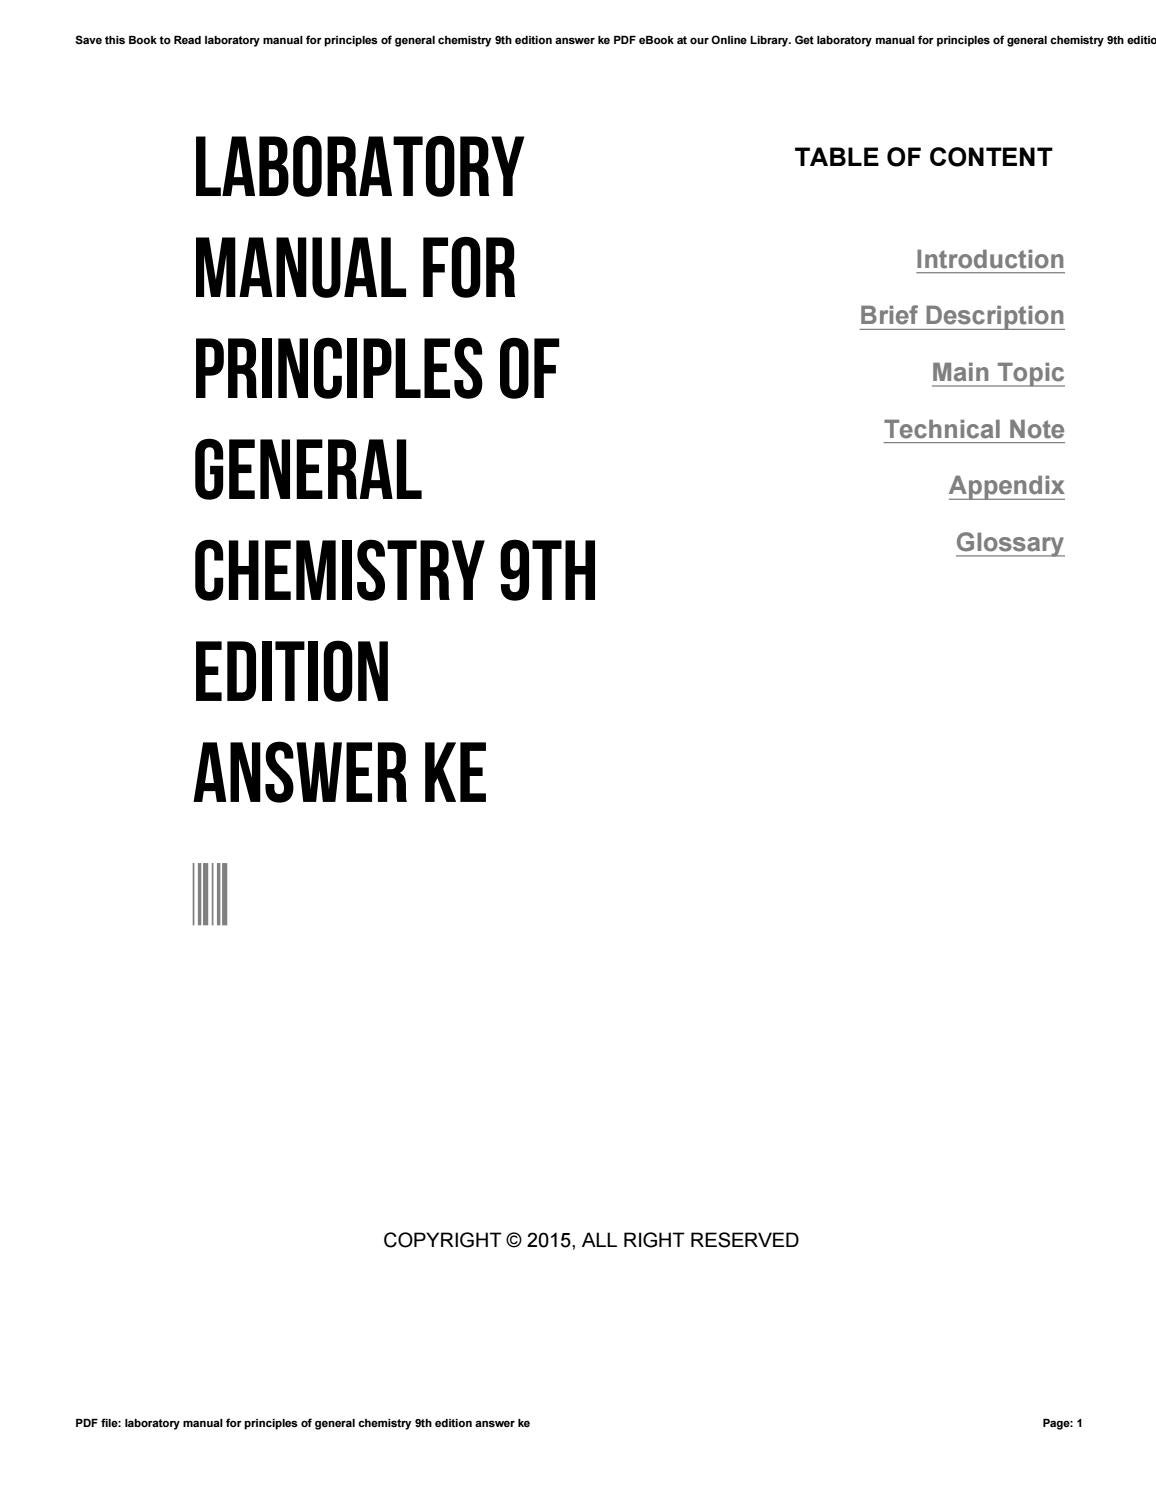 Laboratory manual for principles of general chemistry 9th edition answer ke  by sroff5 - issuu